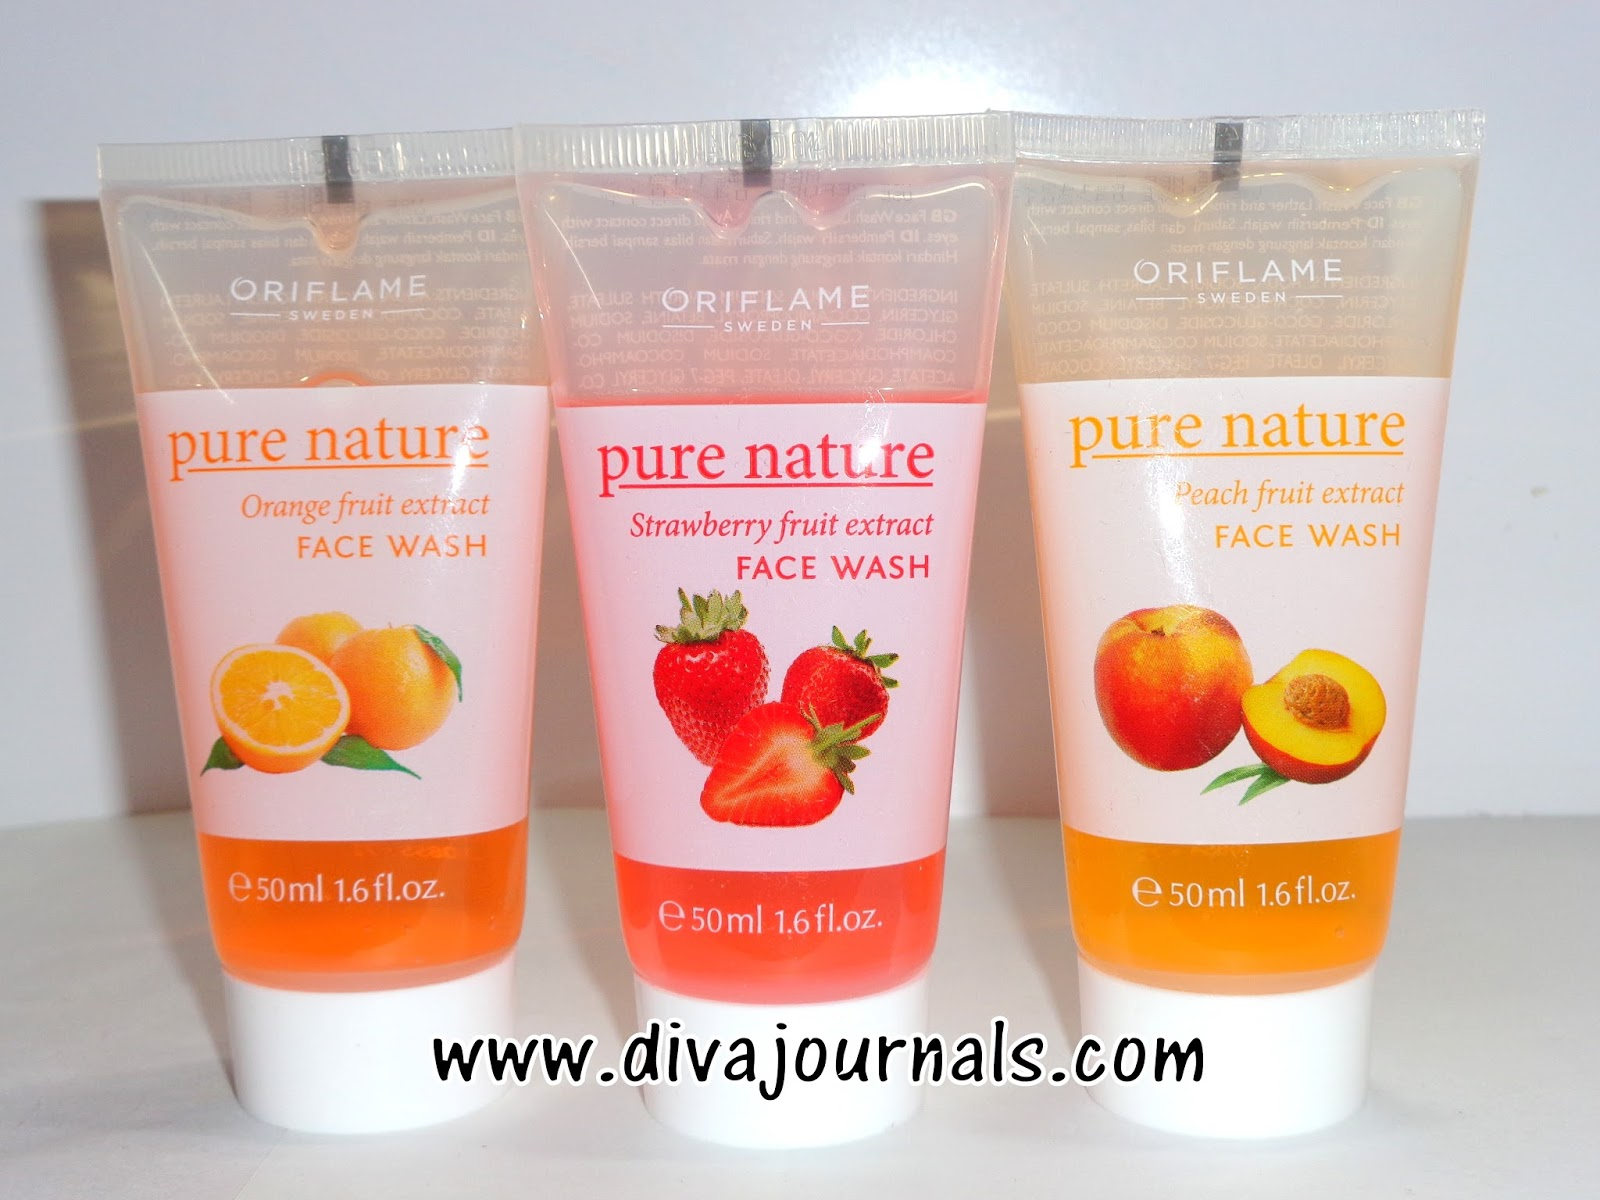 Oriflame Pure Nature Peach-Strawberry-Orange Fruit Extract Face wash Review